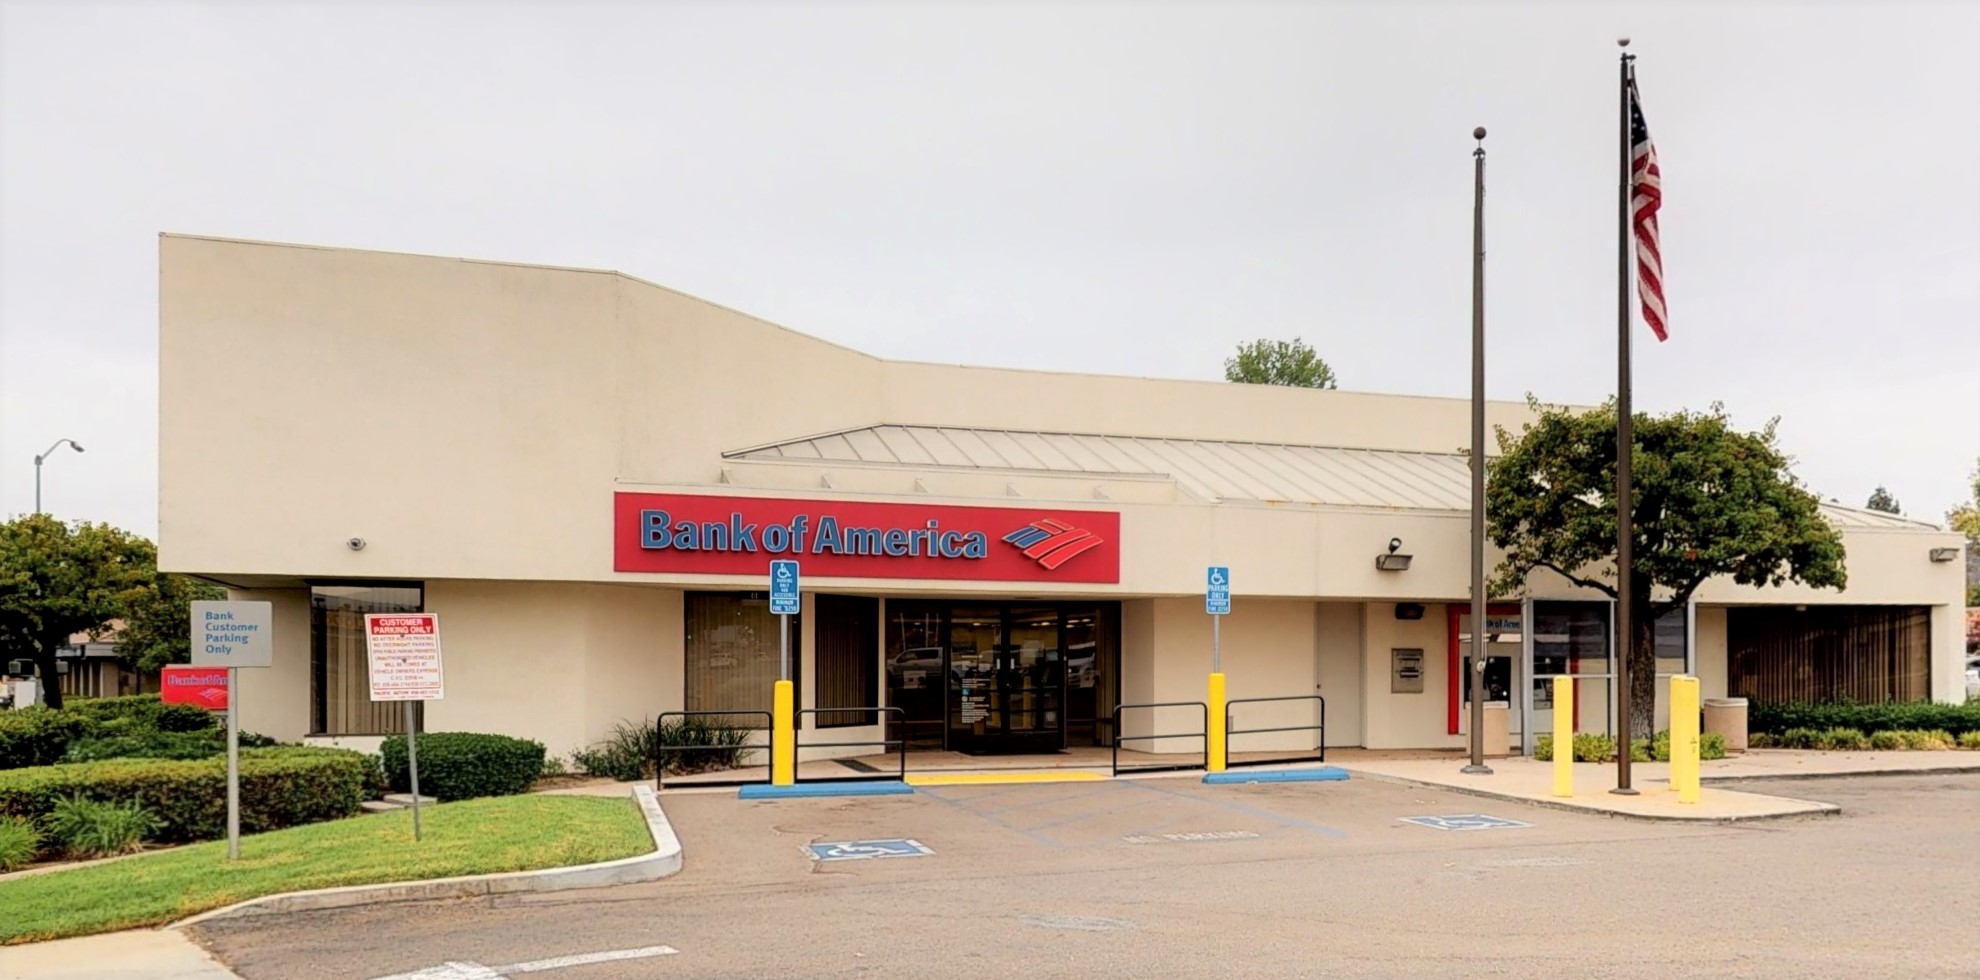 Bank of America financial center with drive-thru ATM | 12724 Poway Rd, Poway, CA 92064